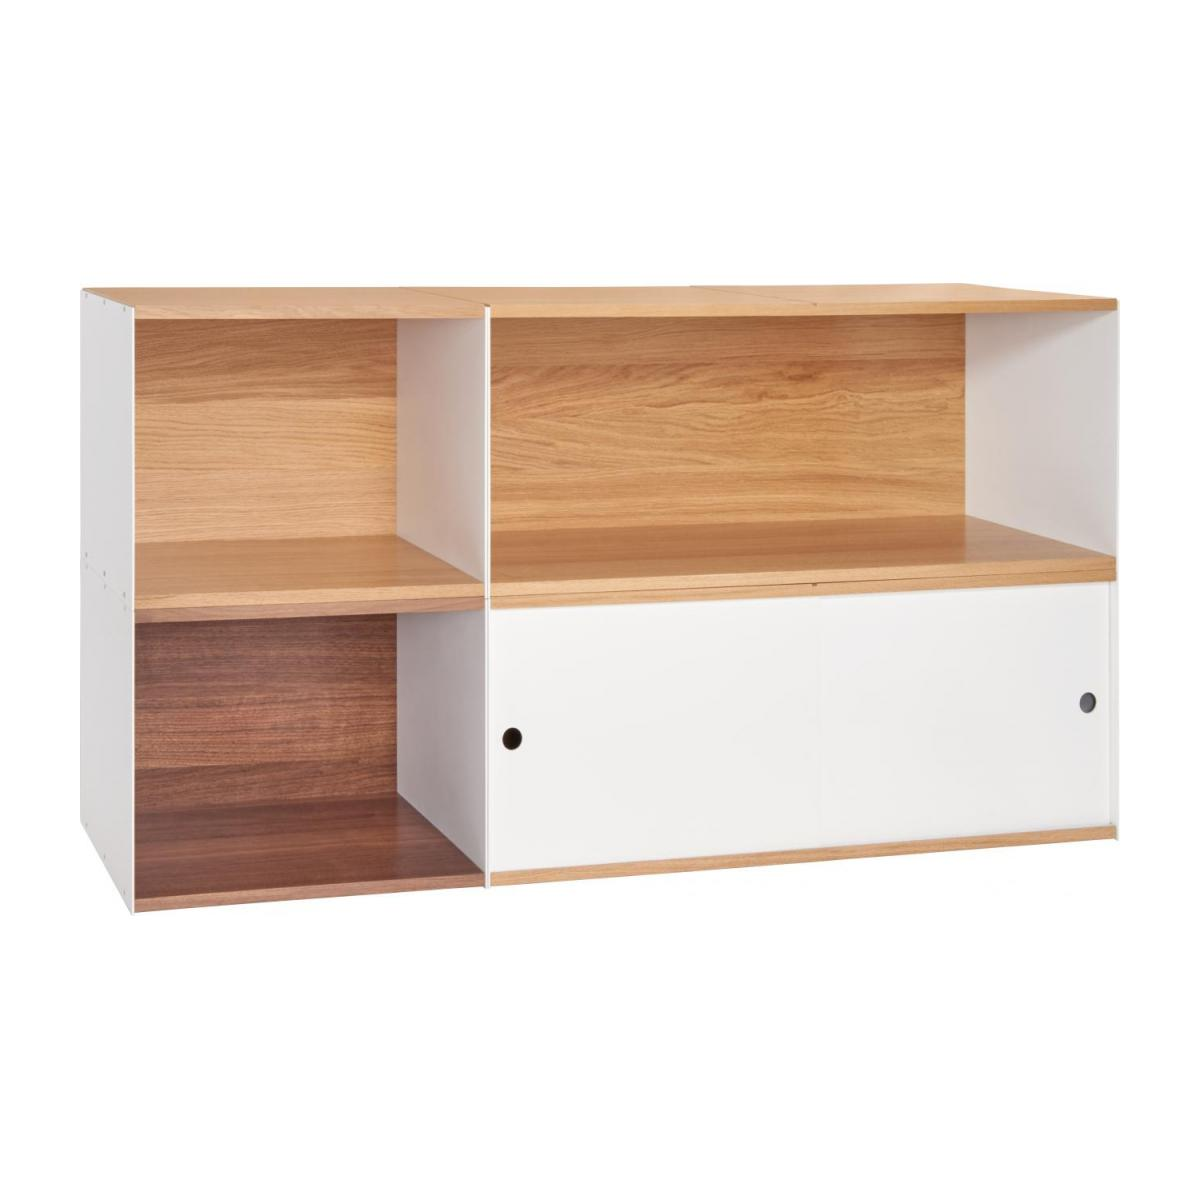 White and oak big closed modular storage rack - Design by Kasch Kasch n°8